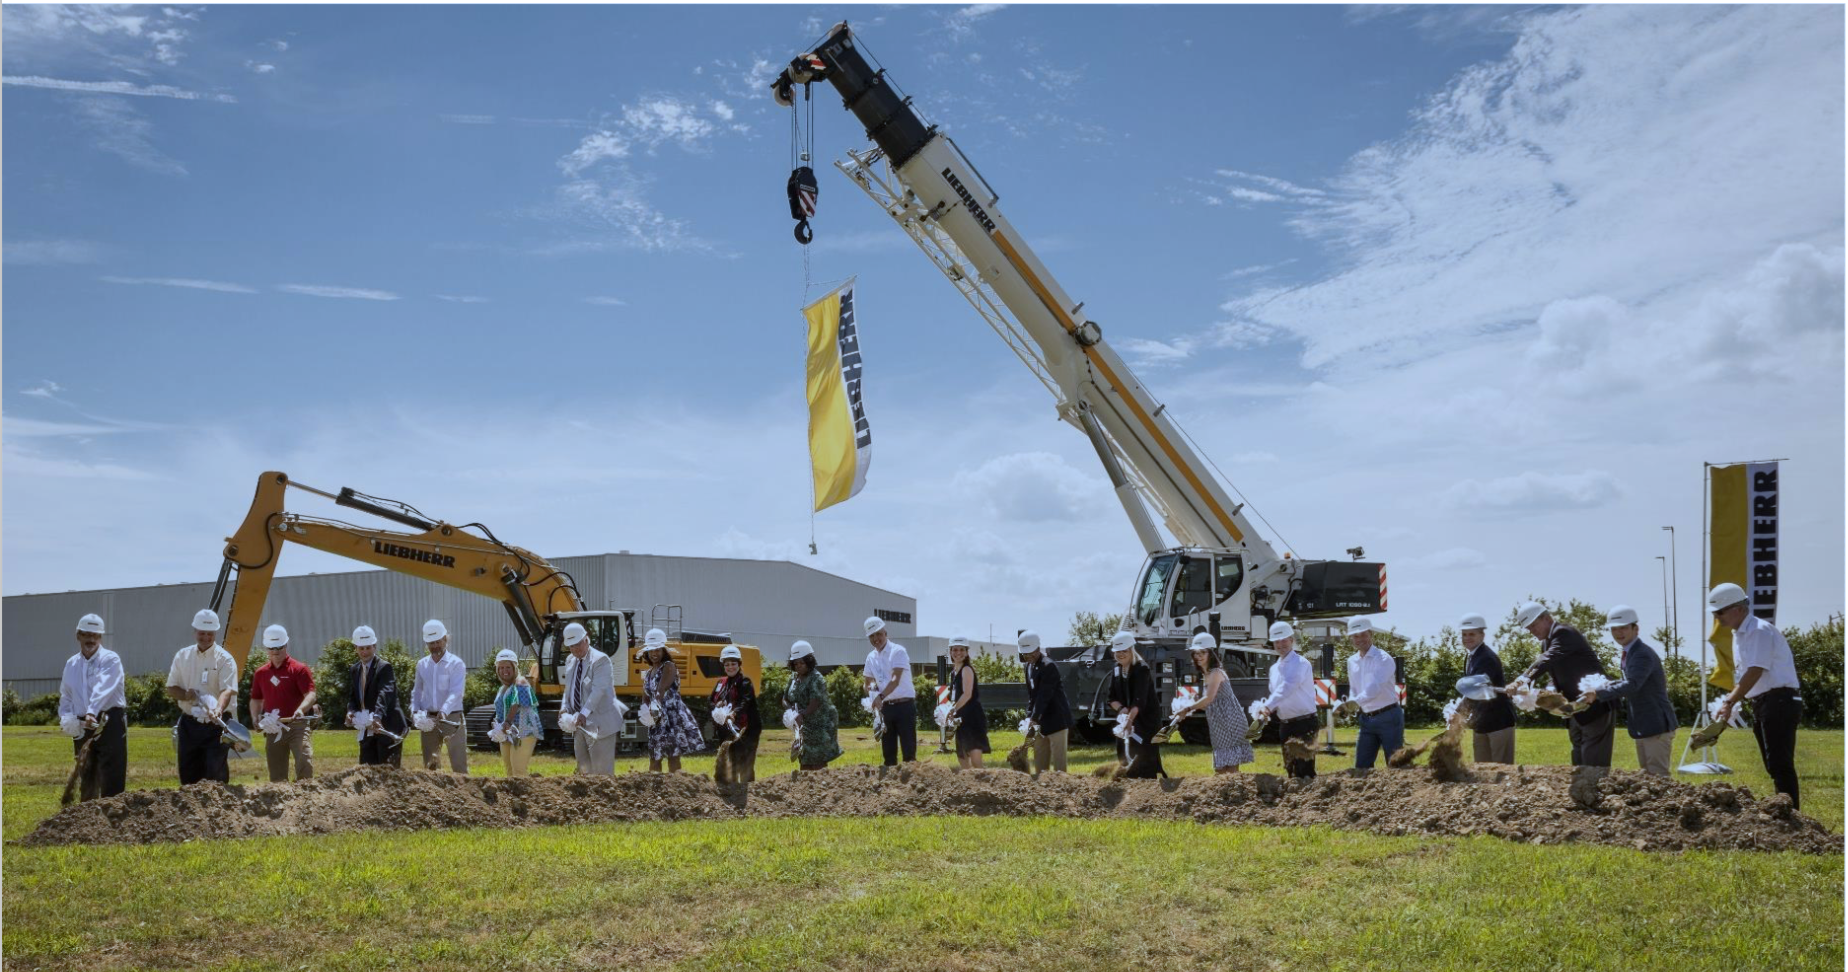 Breaking ground at Liebherr's expansion in Newport News, Virginia